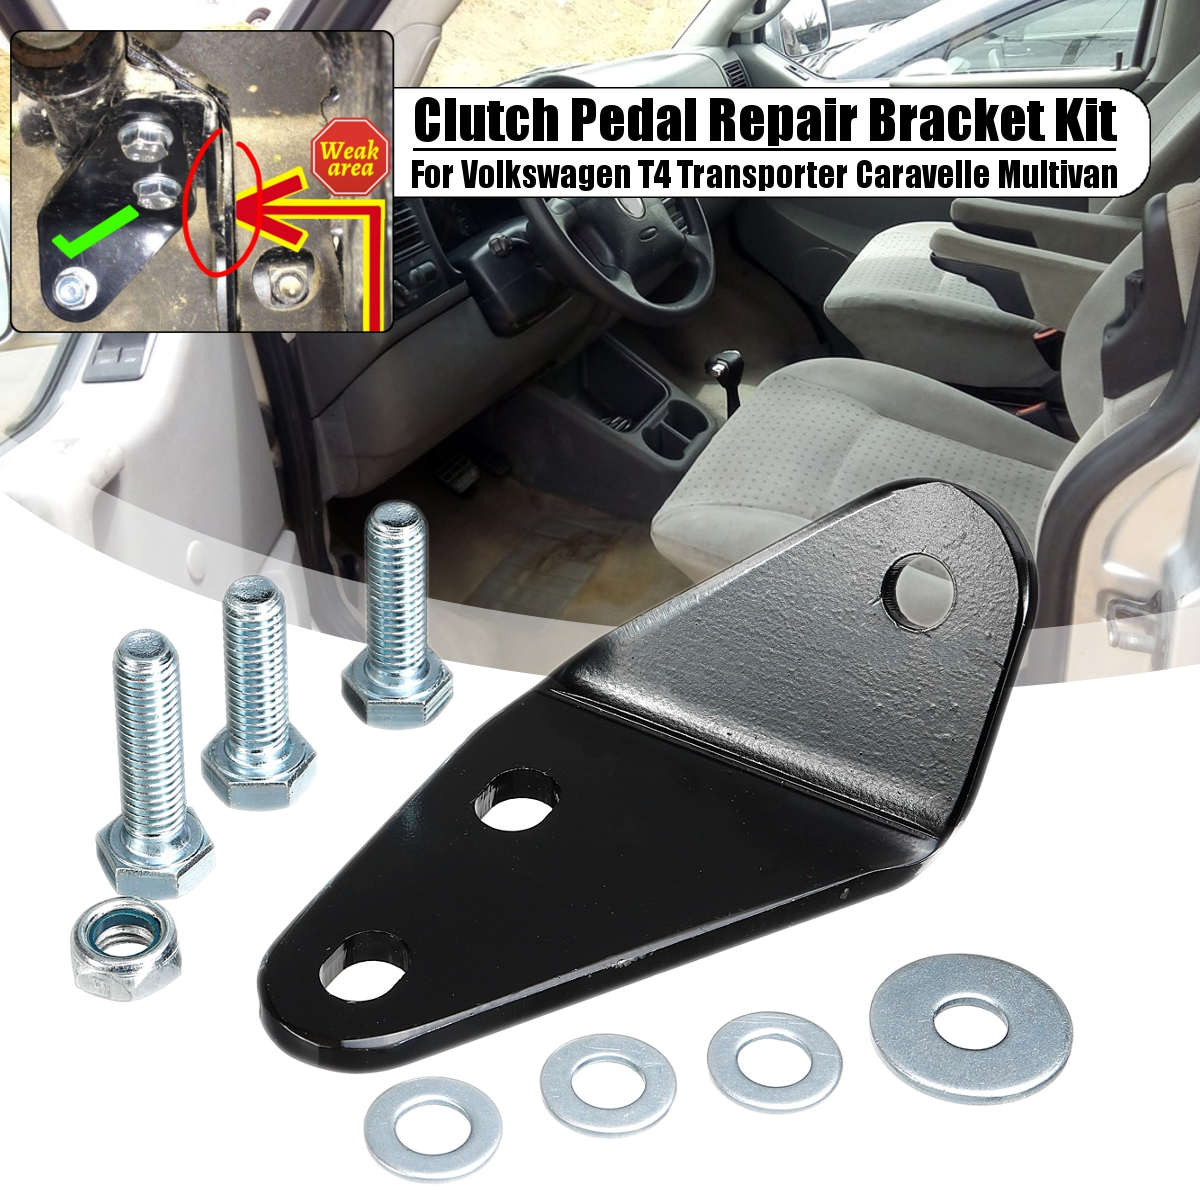 Clutch Pedal Repair Bracket For Volkswagen VW T4 Transporter Caravelle Multivan